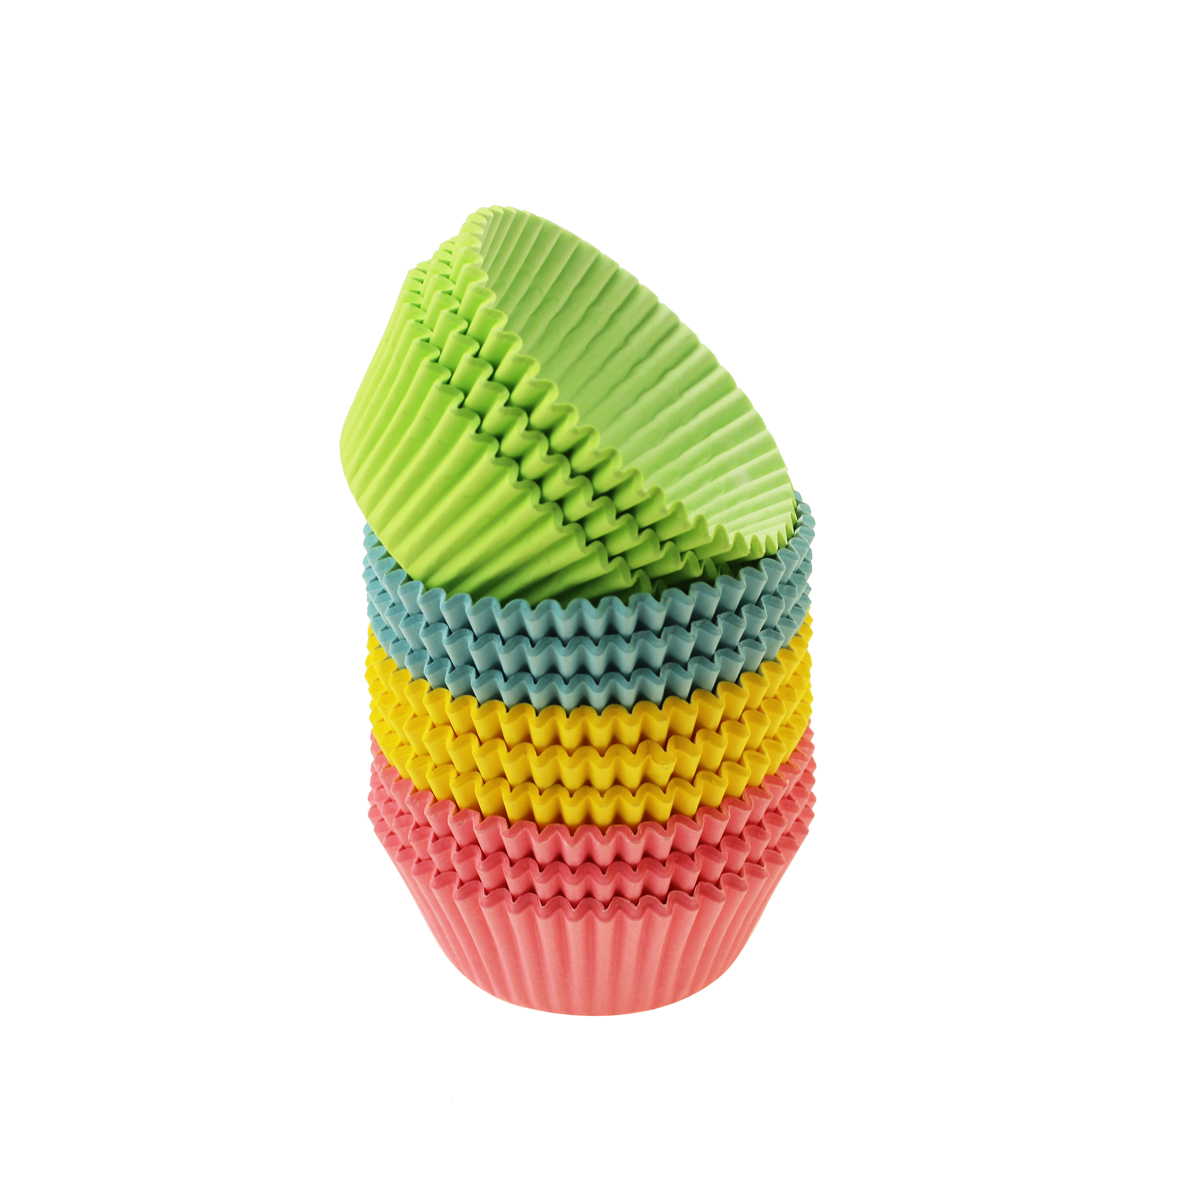 Rainbow colored baking cup